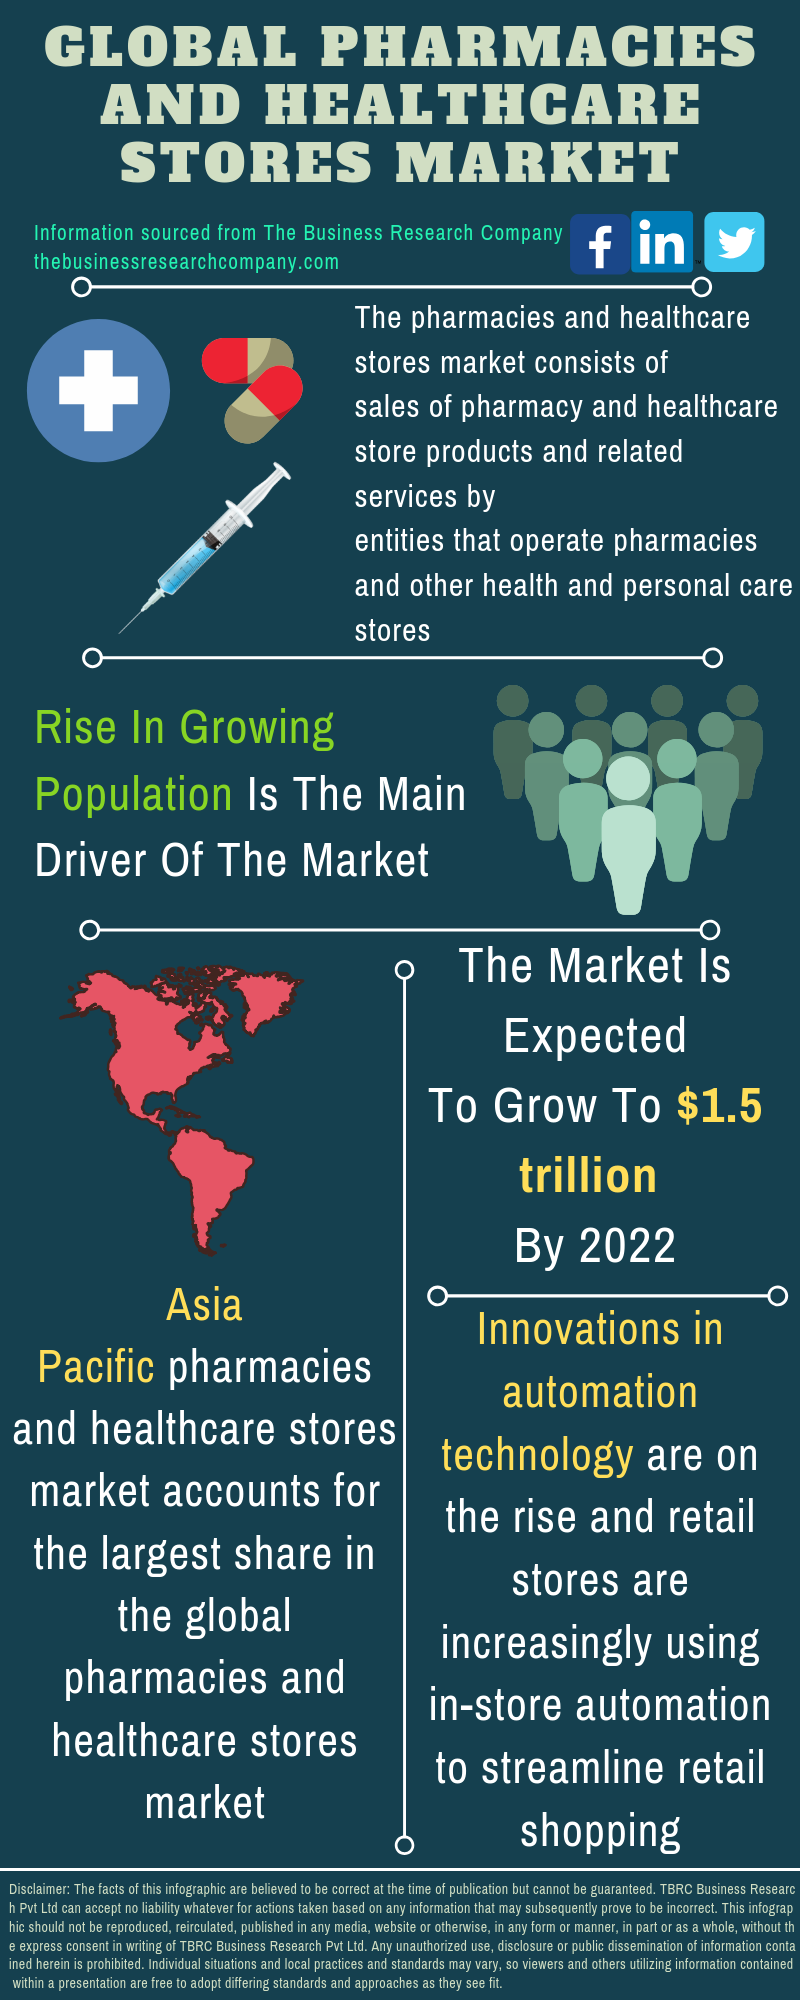 Pharmacies and Healthcare Stores Market